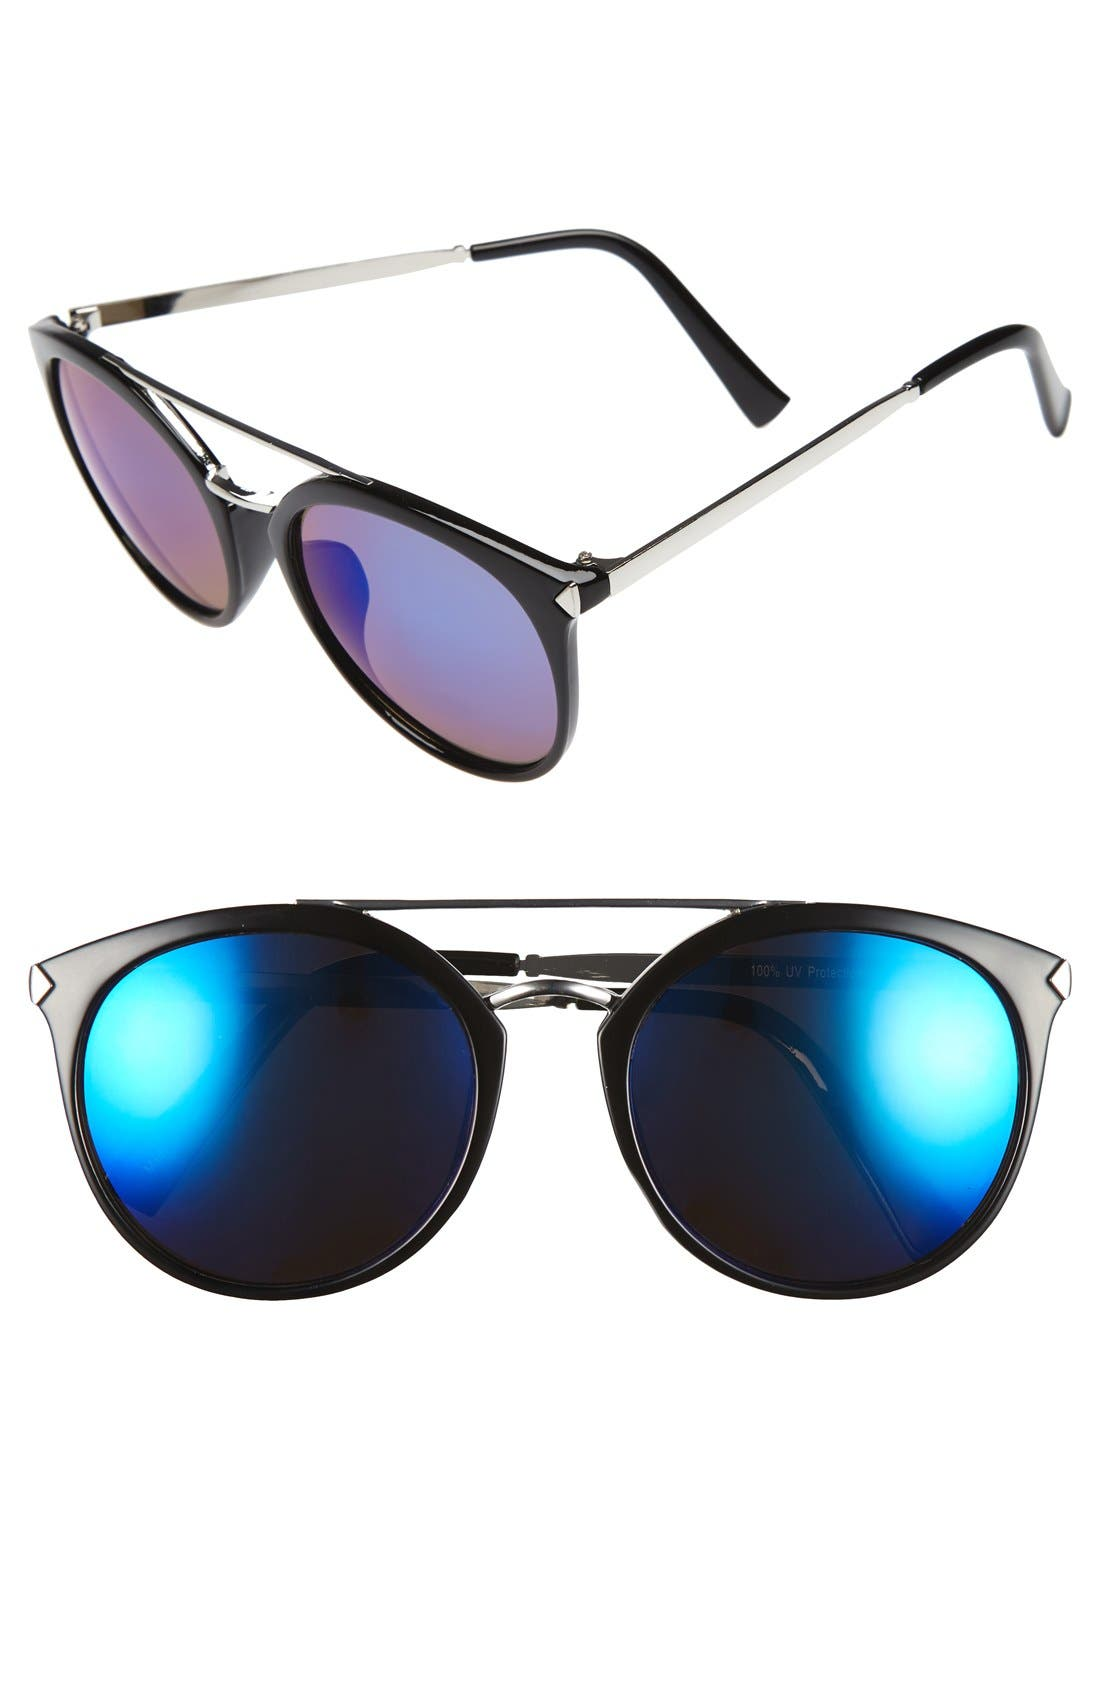 Main Image - BP. 55mm Mirrored Sunglasses